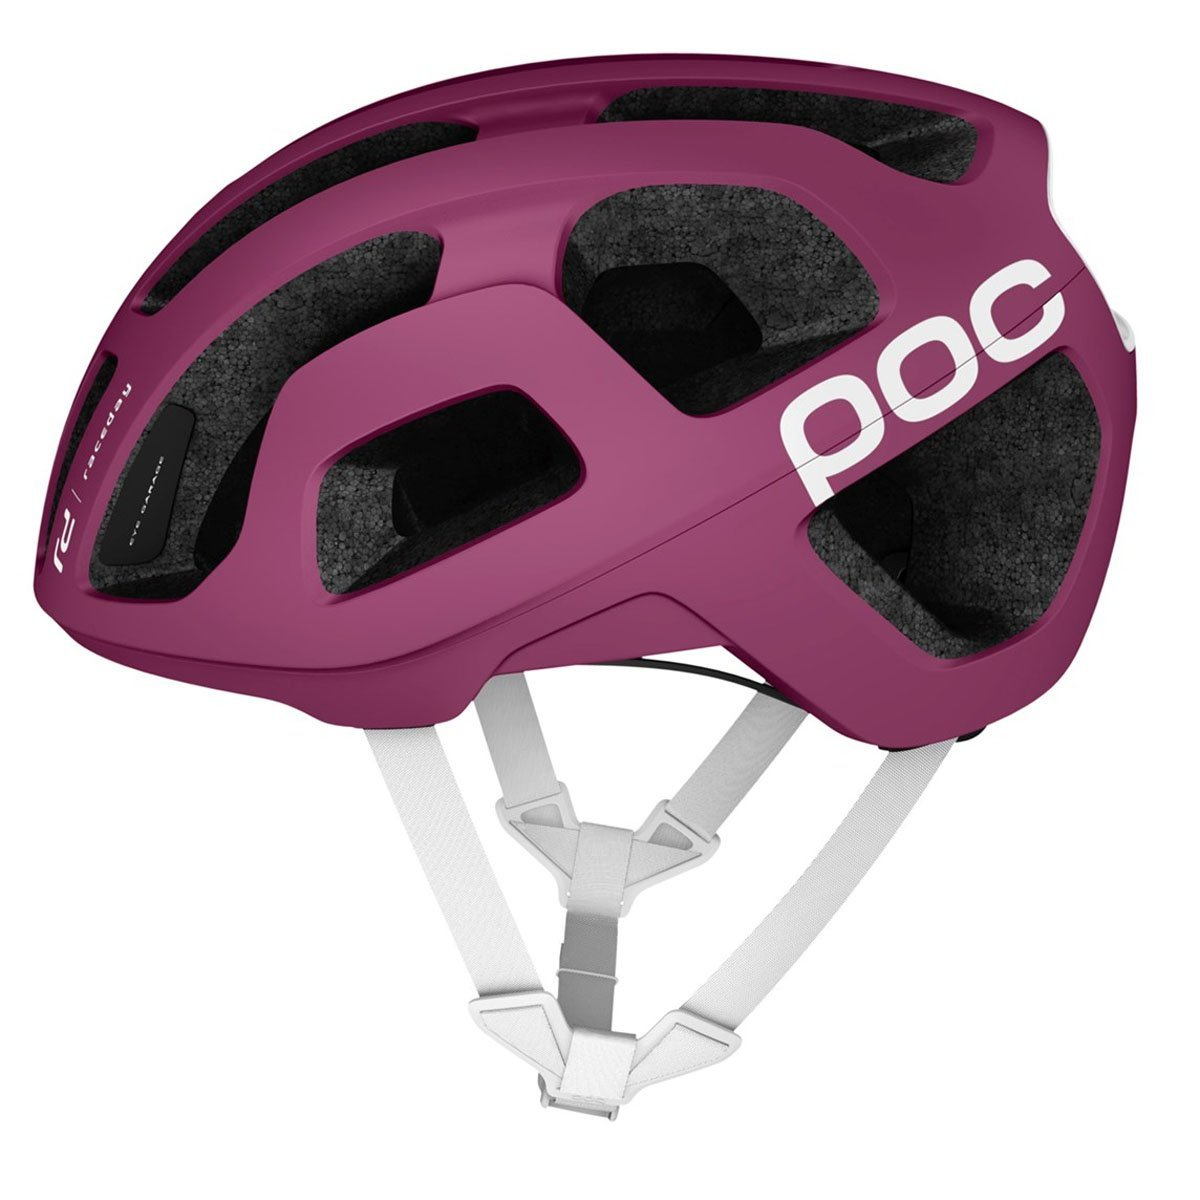 Medium POC Bicycle Helmets